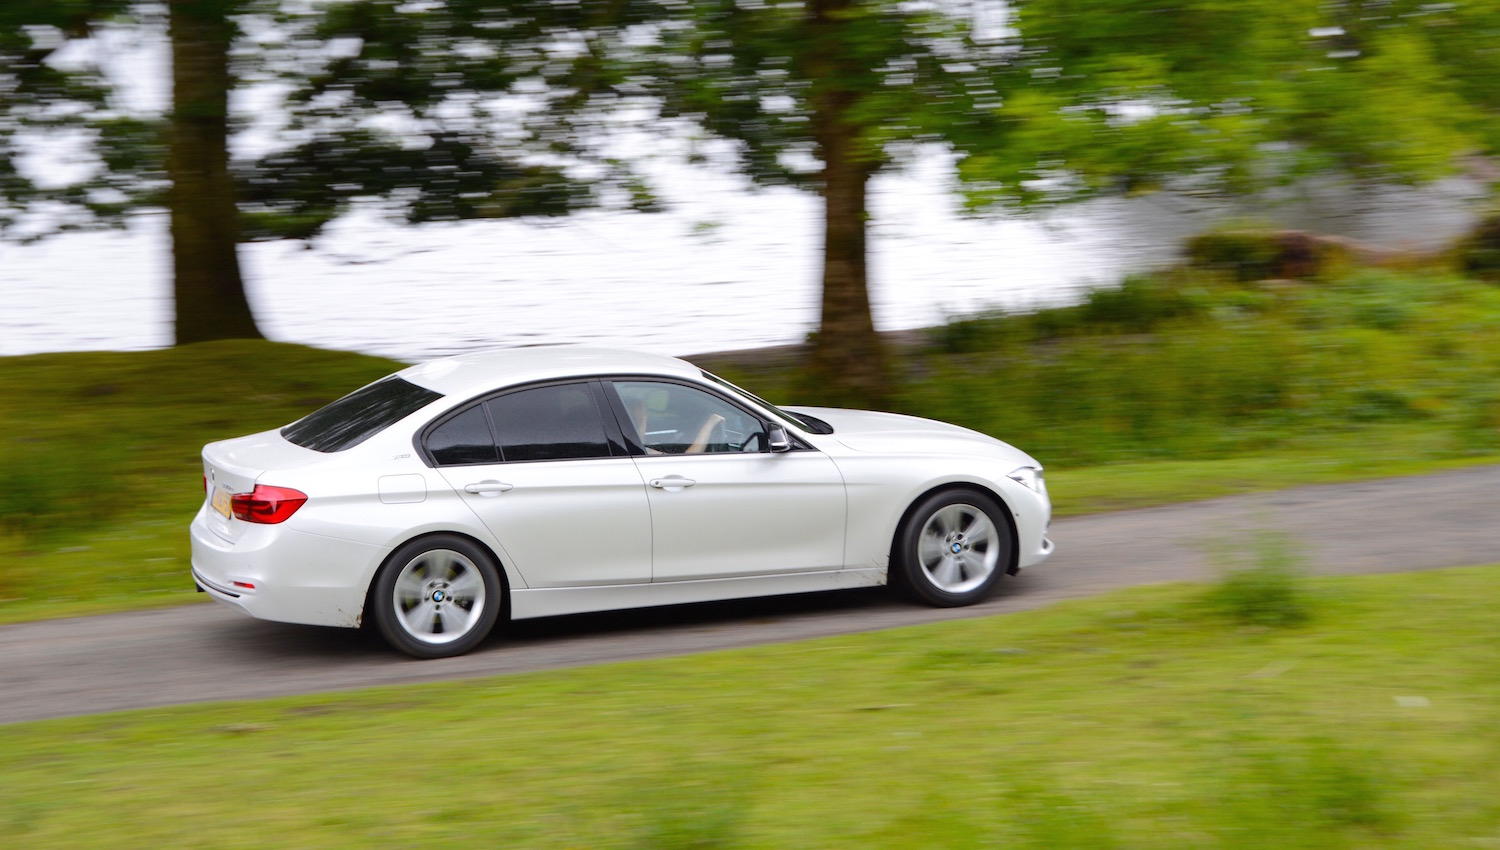 Bmw 330e Review Uk Best Mpg Petrol Cars Guide To Low Emission Cars